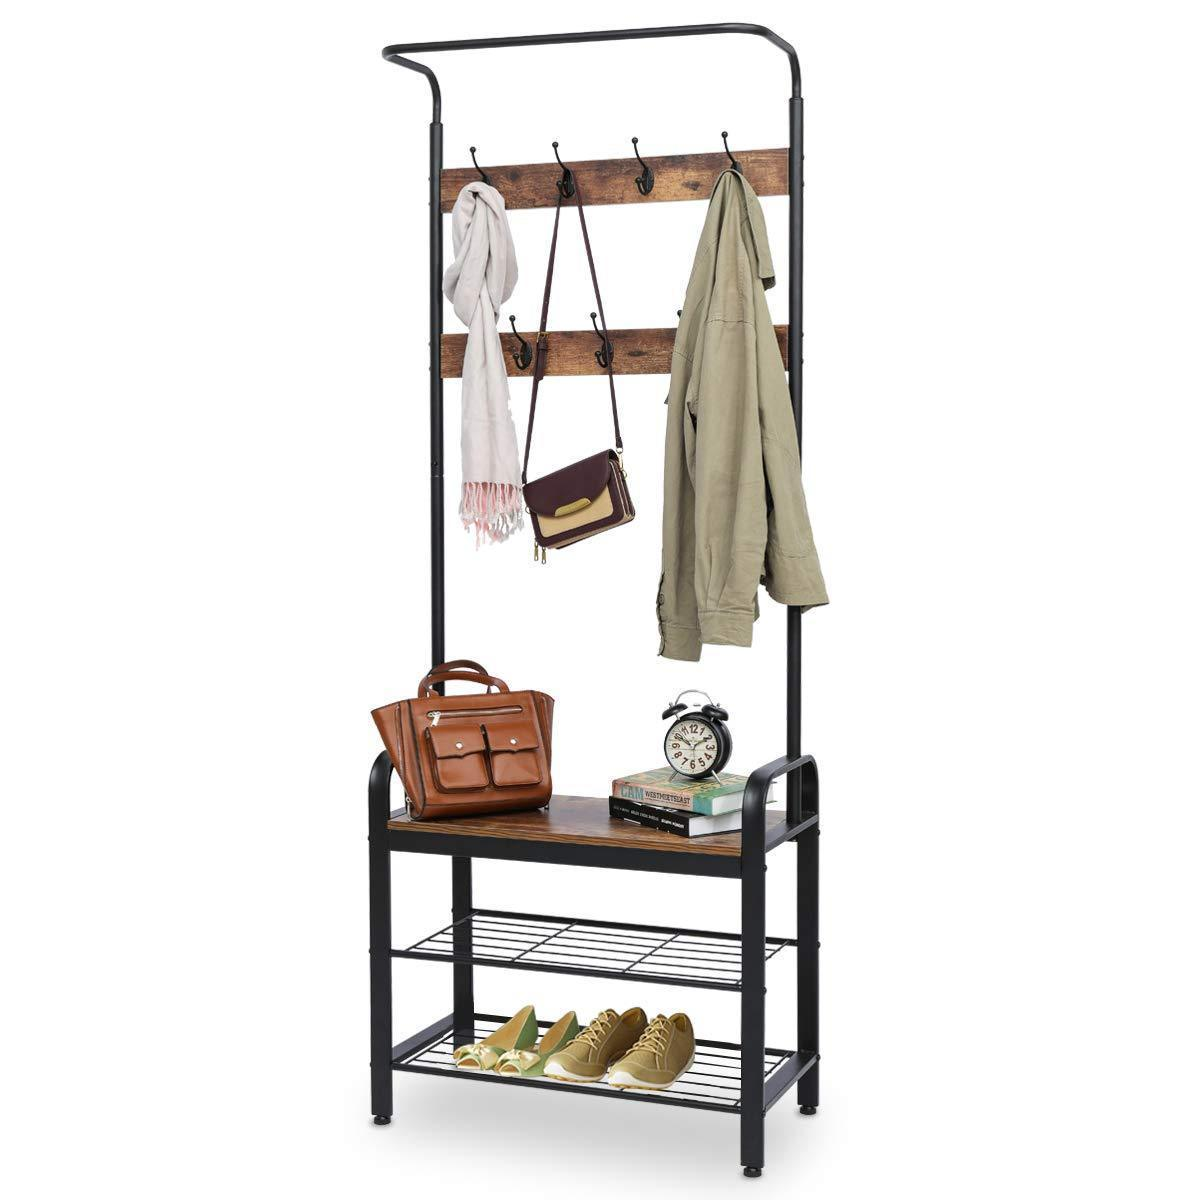 KINGSO Industrial Coat Rack, Hall Tree Entryway Coat Shoe Rack 3-Tier Shoe Bench 7 Hooks, Wood Look Accent Furniture with Stable Metal Frame Easy Assembly